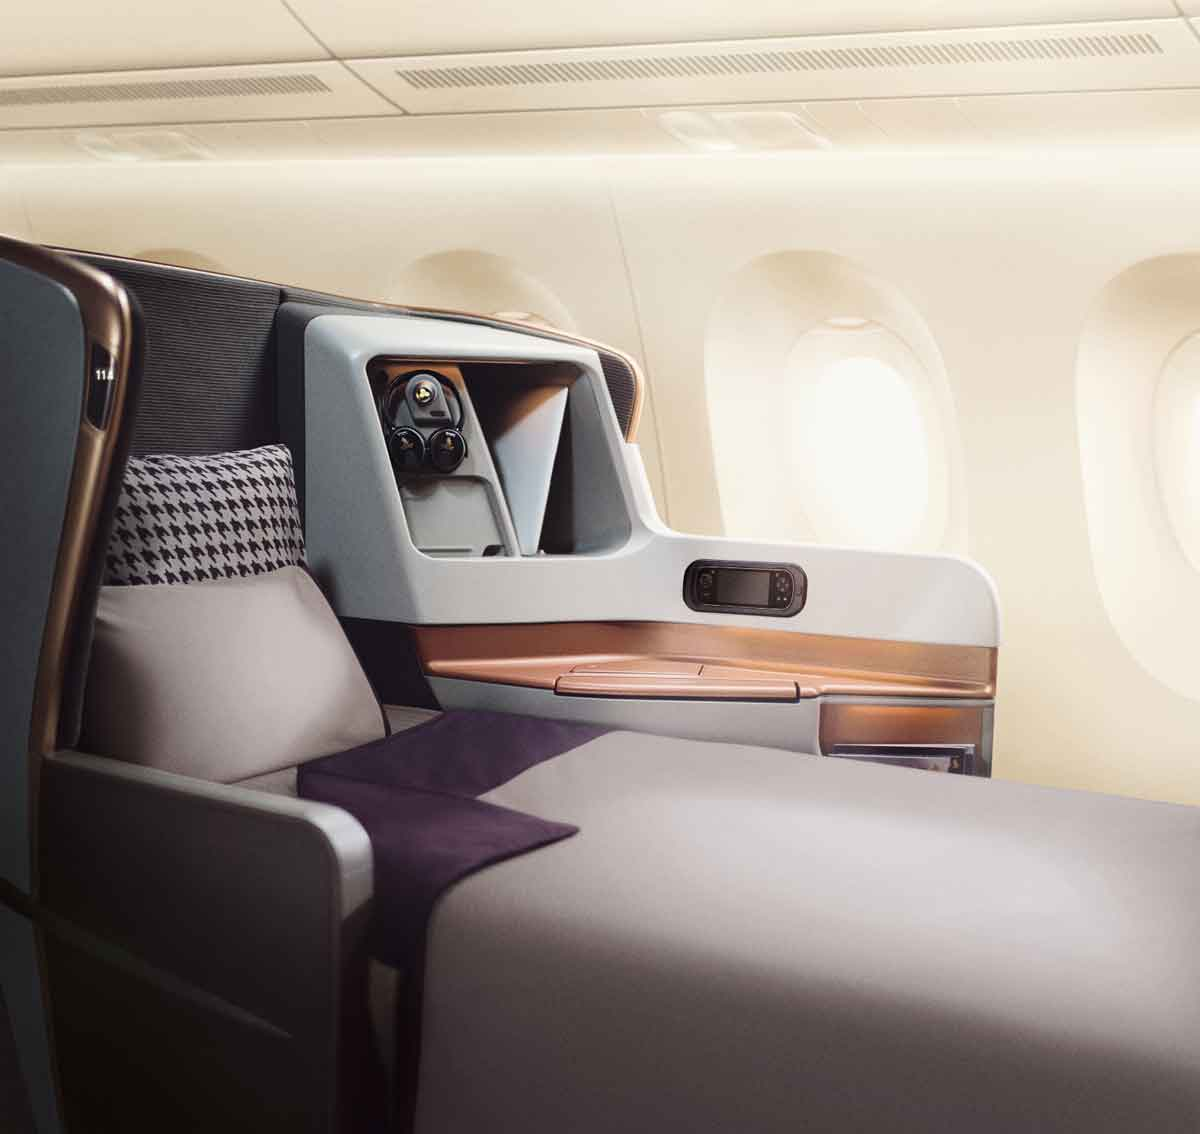 Singapore Airlines A350-900ULR Business Class Seat